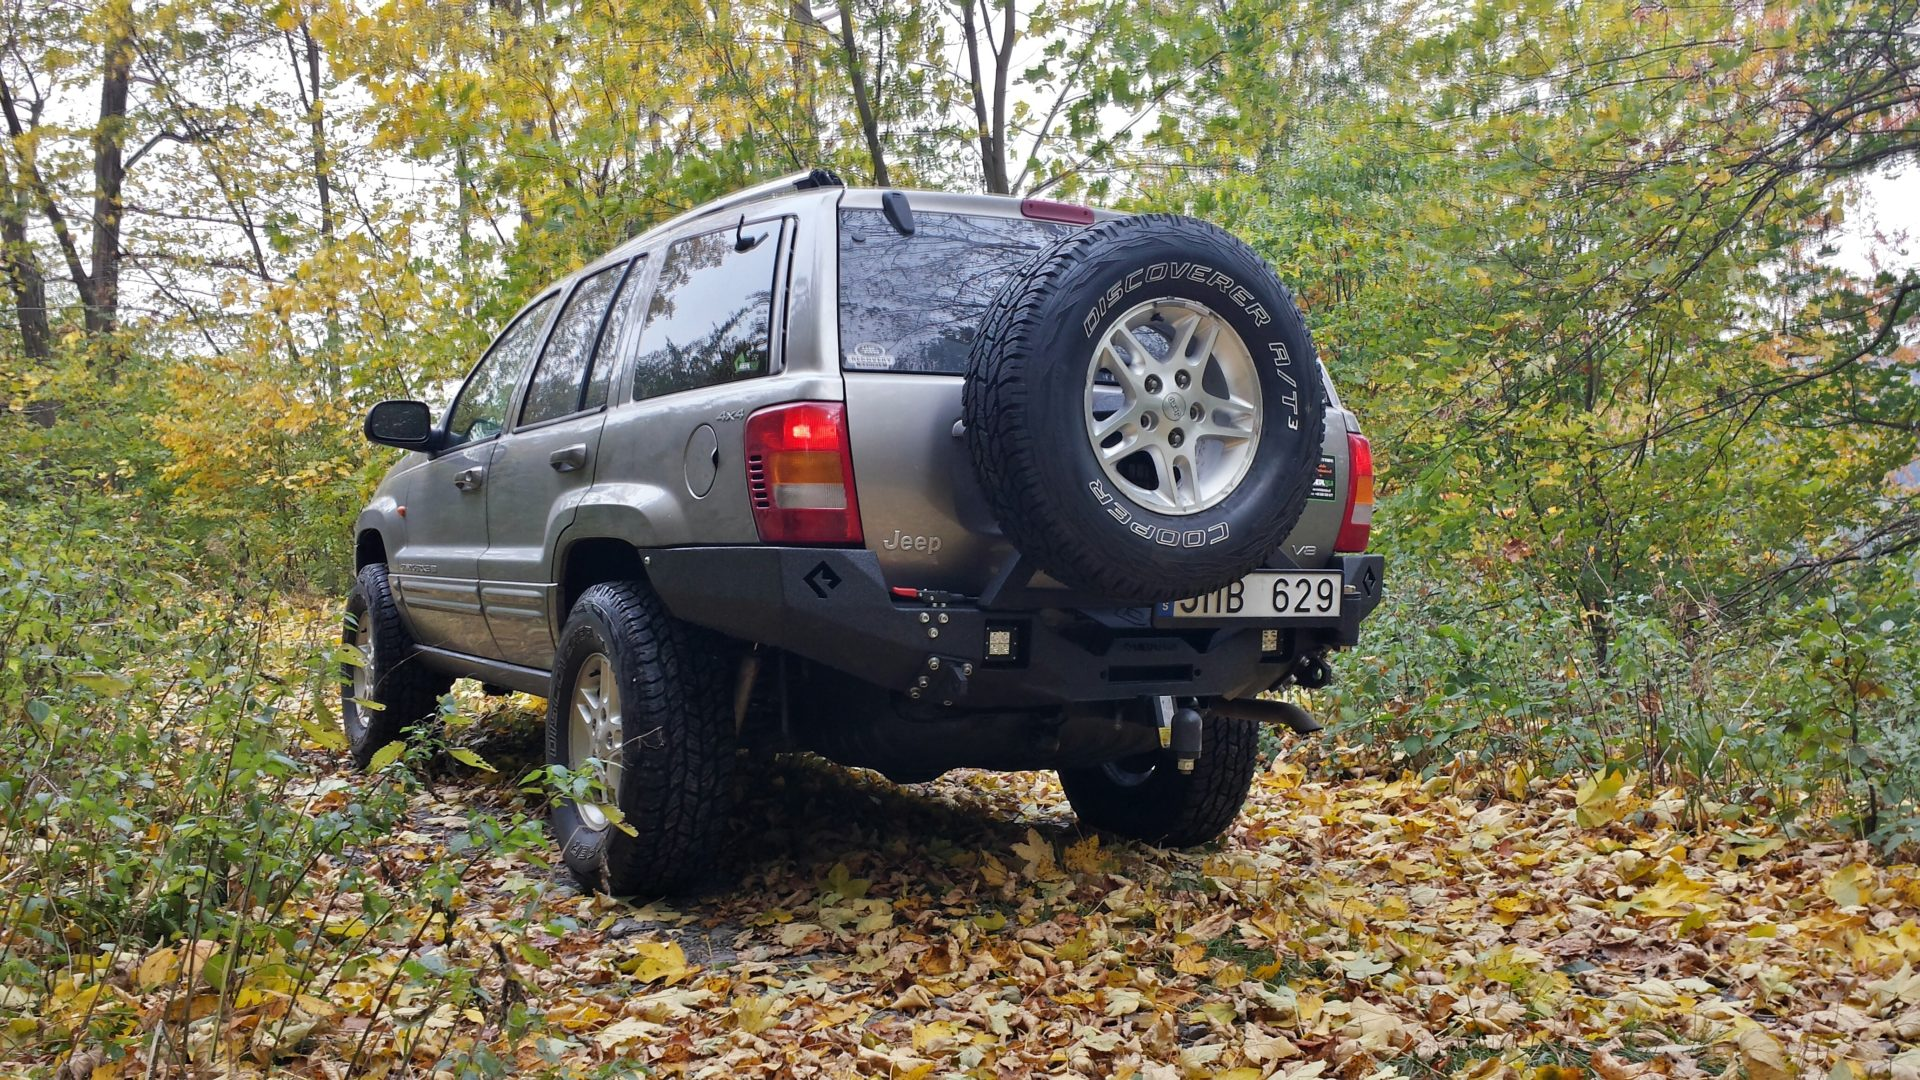 Jeep WJ with Metalpasja rear bumper